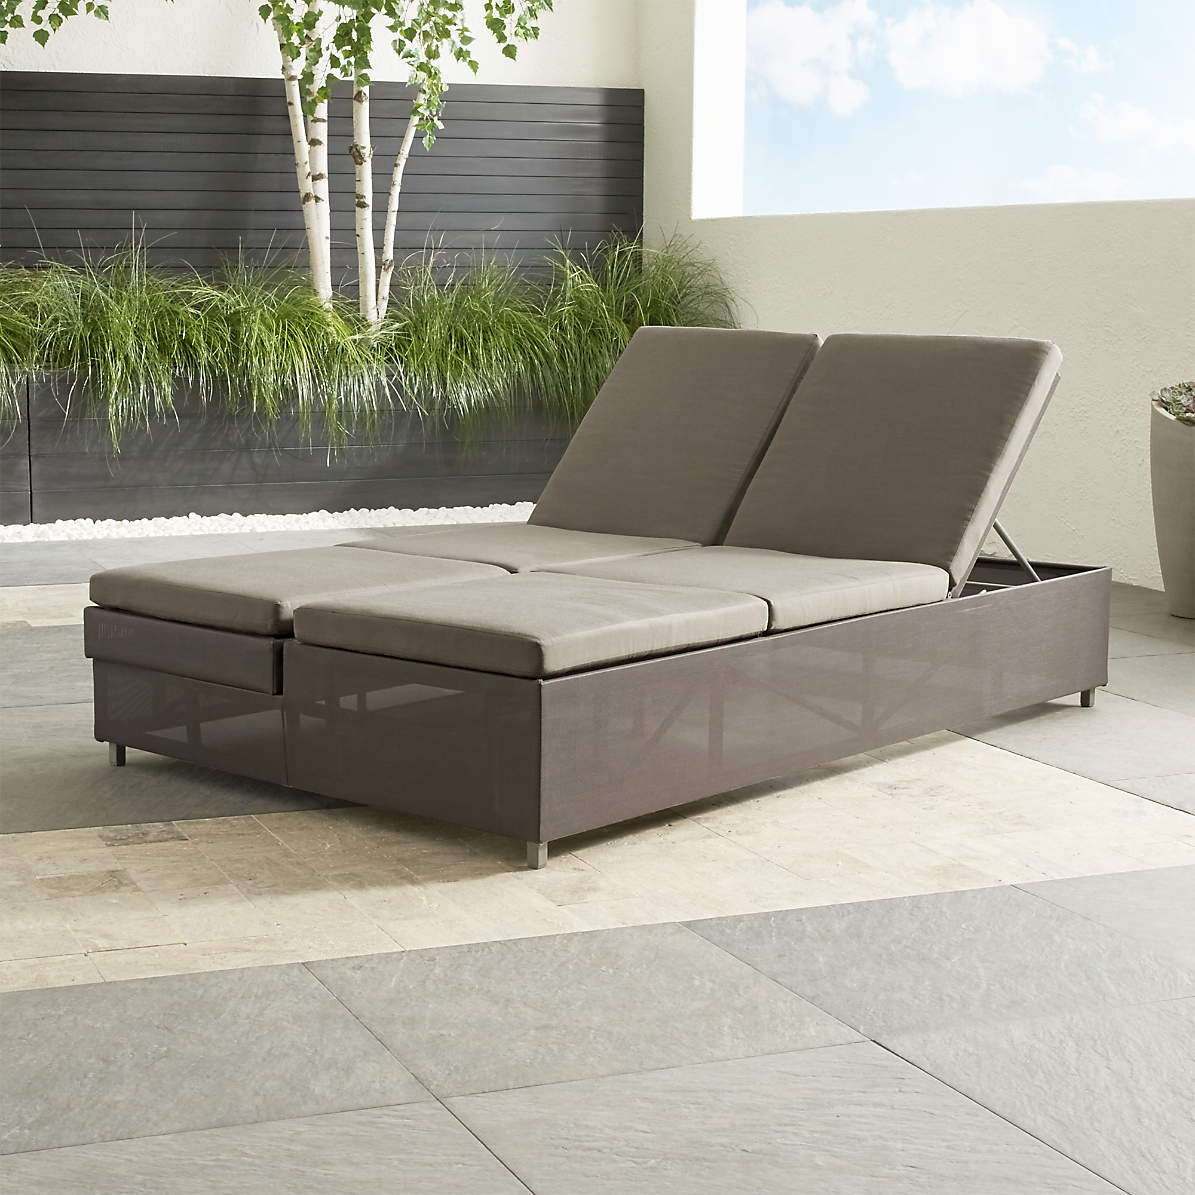 dune taupe double chaise sofa lounge with sunbrella cushions